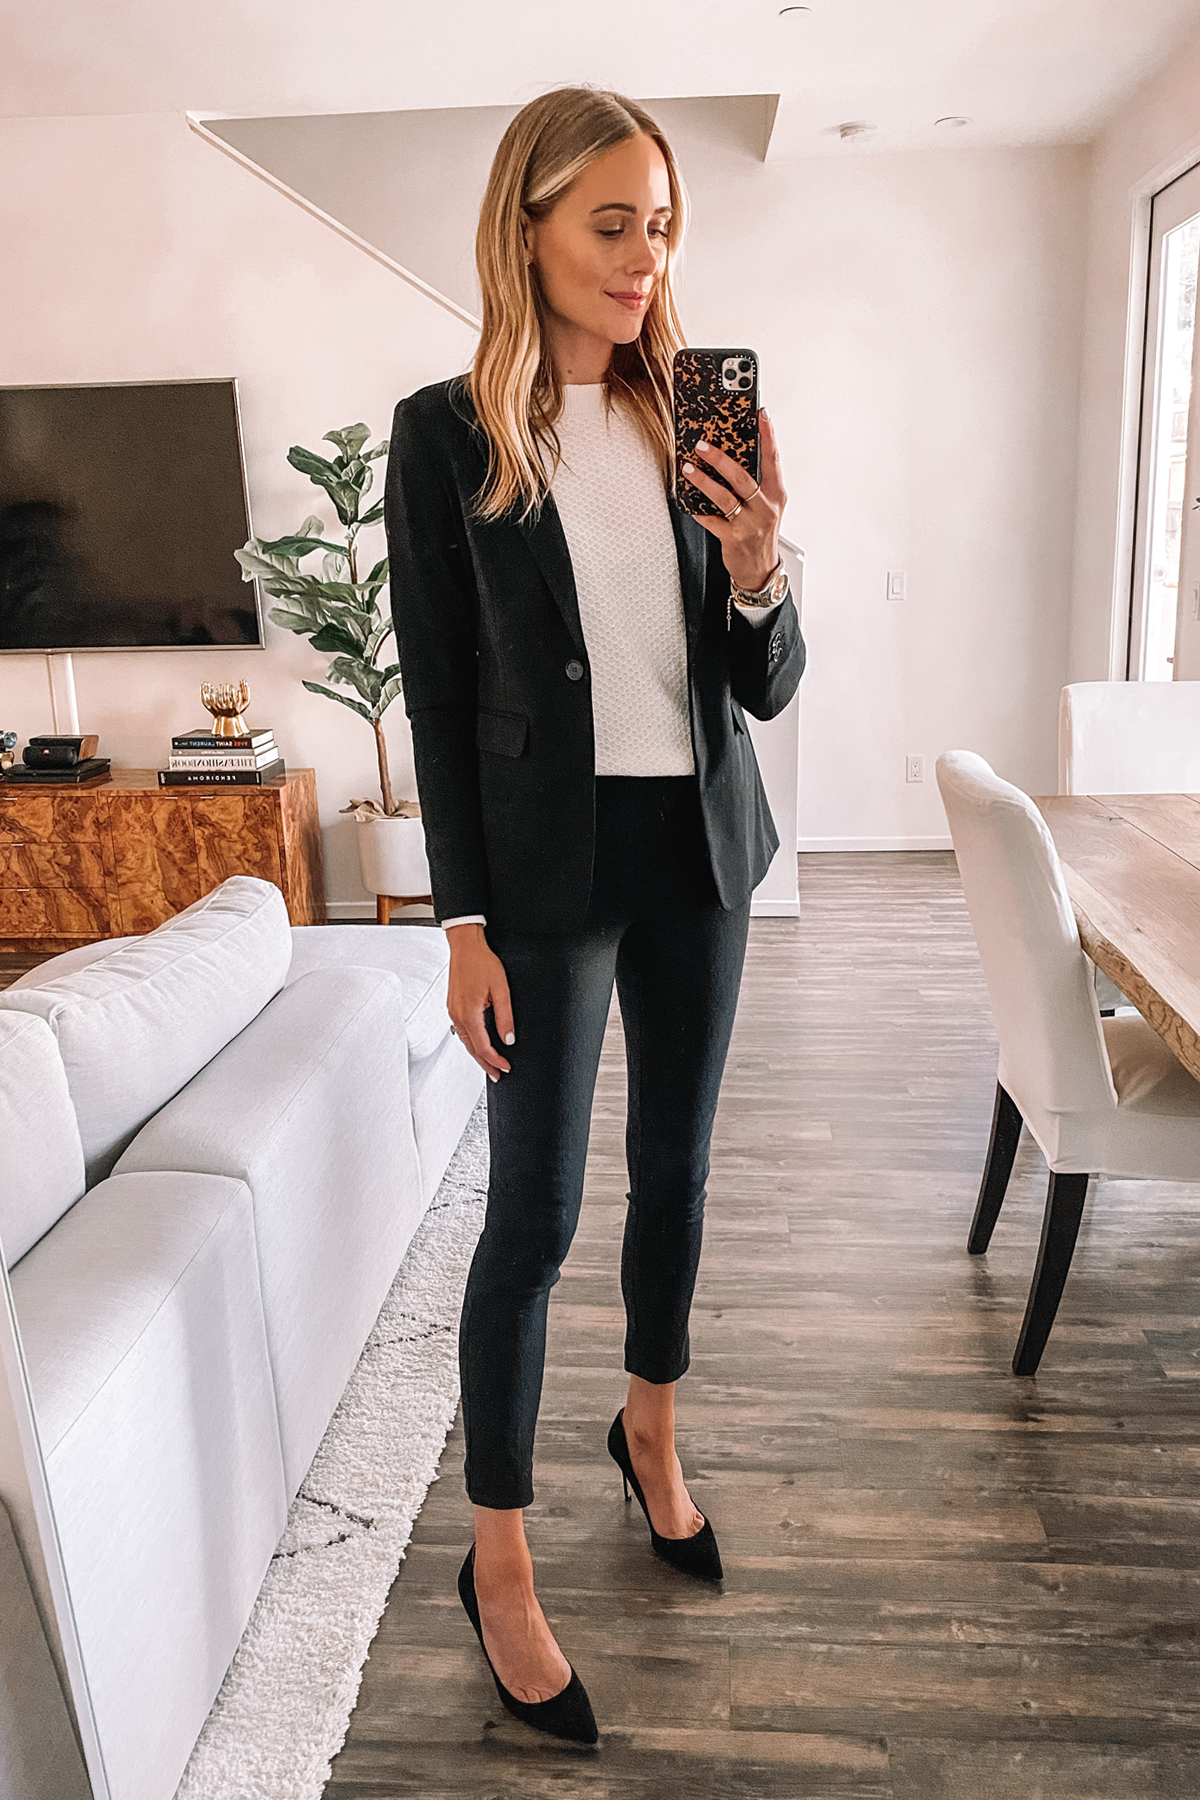 excellent quality online retailer finest selection LOFT Sale Haul & Try-On: Workwear Outfit Ideas for an Entire Month ...